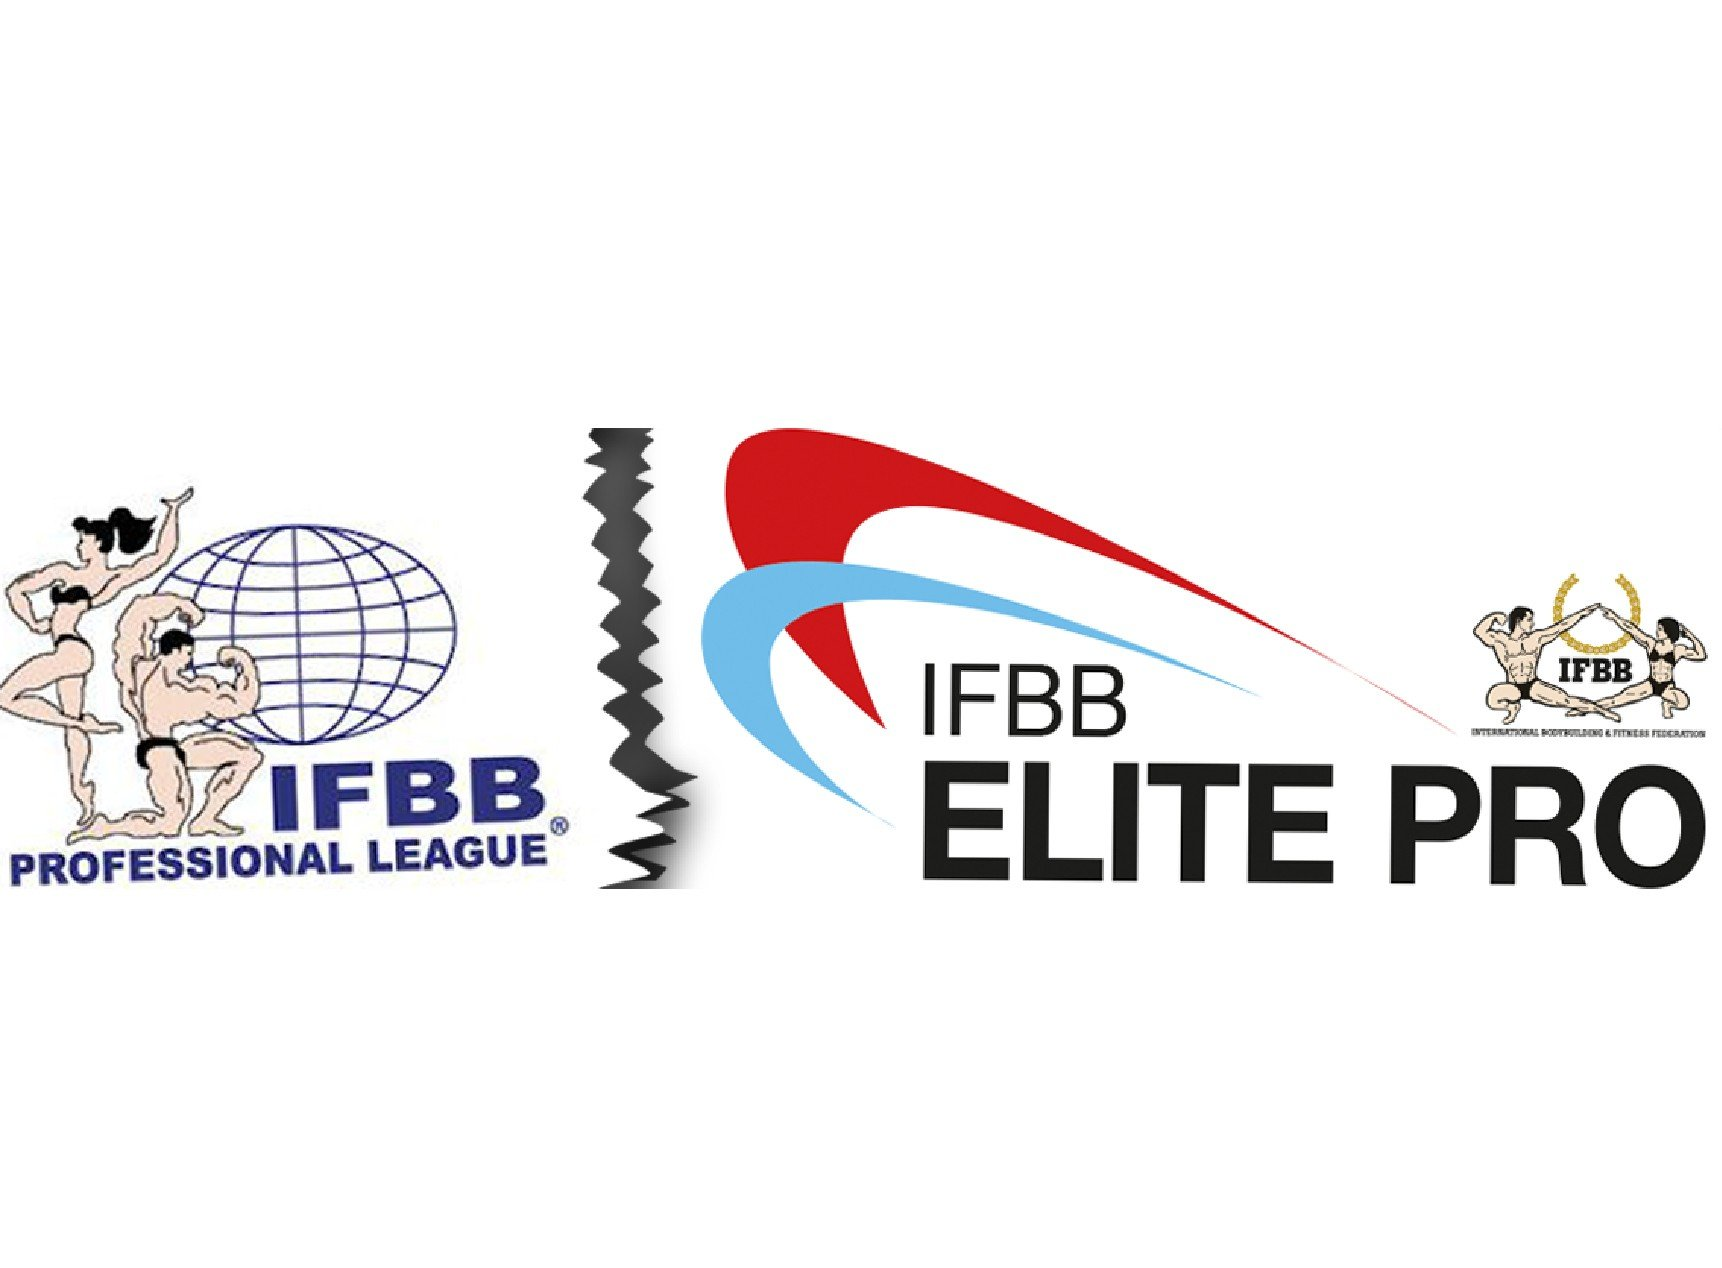 IFBB Pro League published